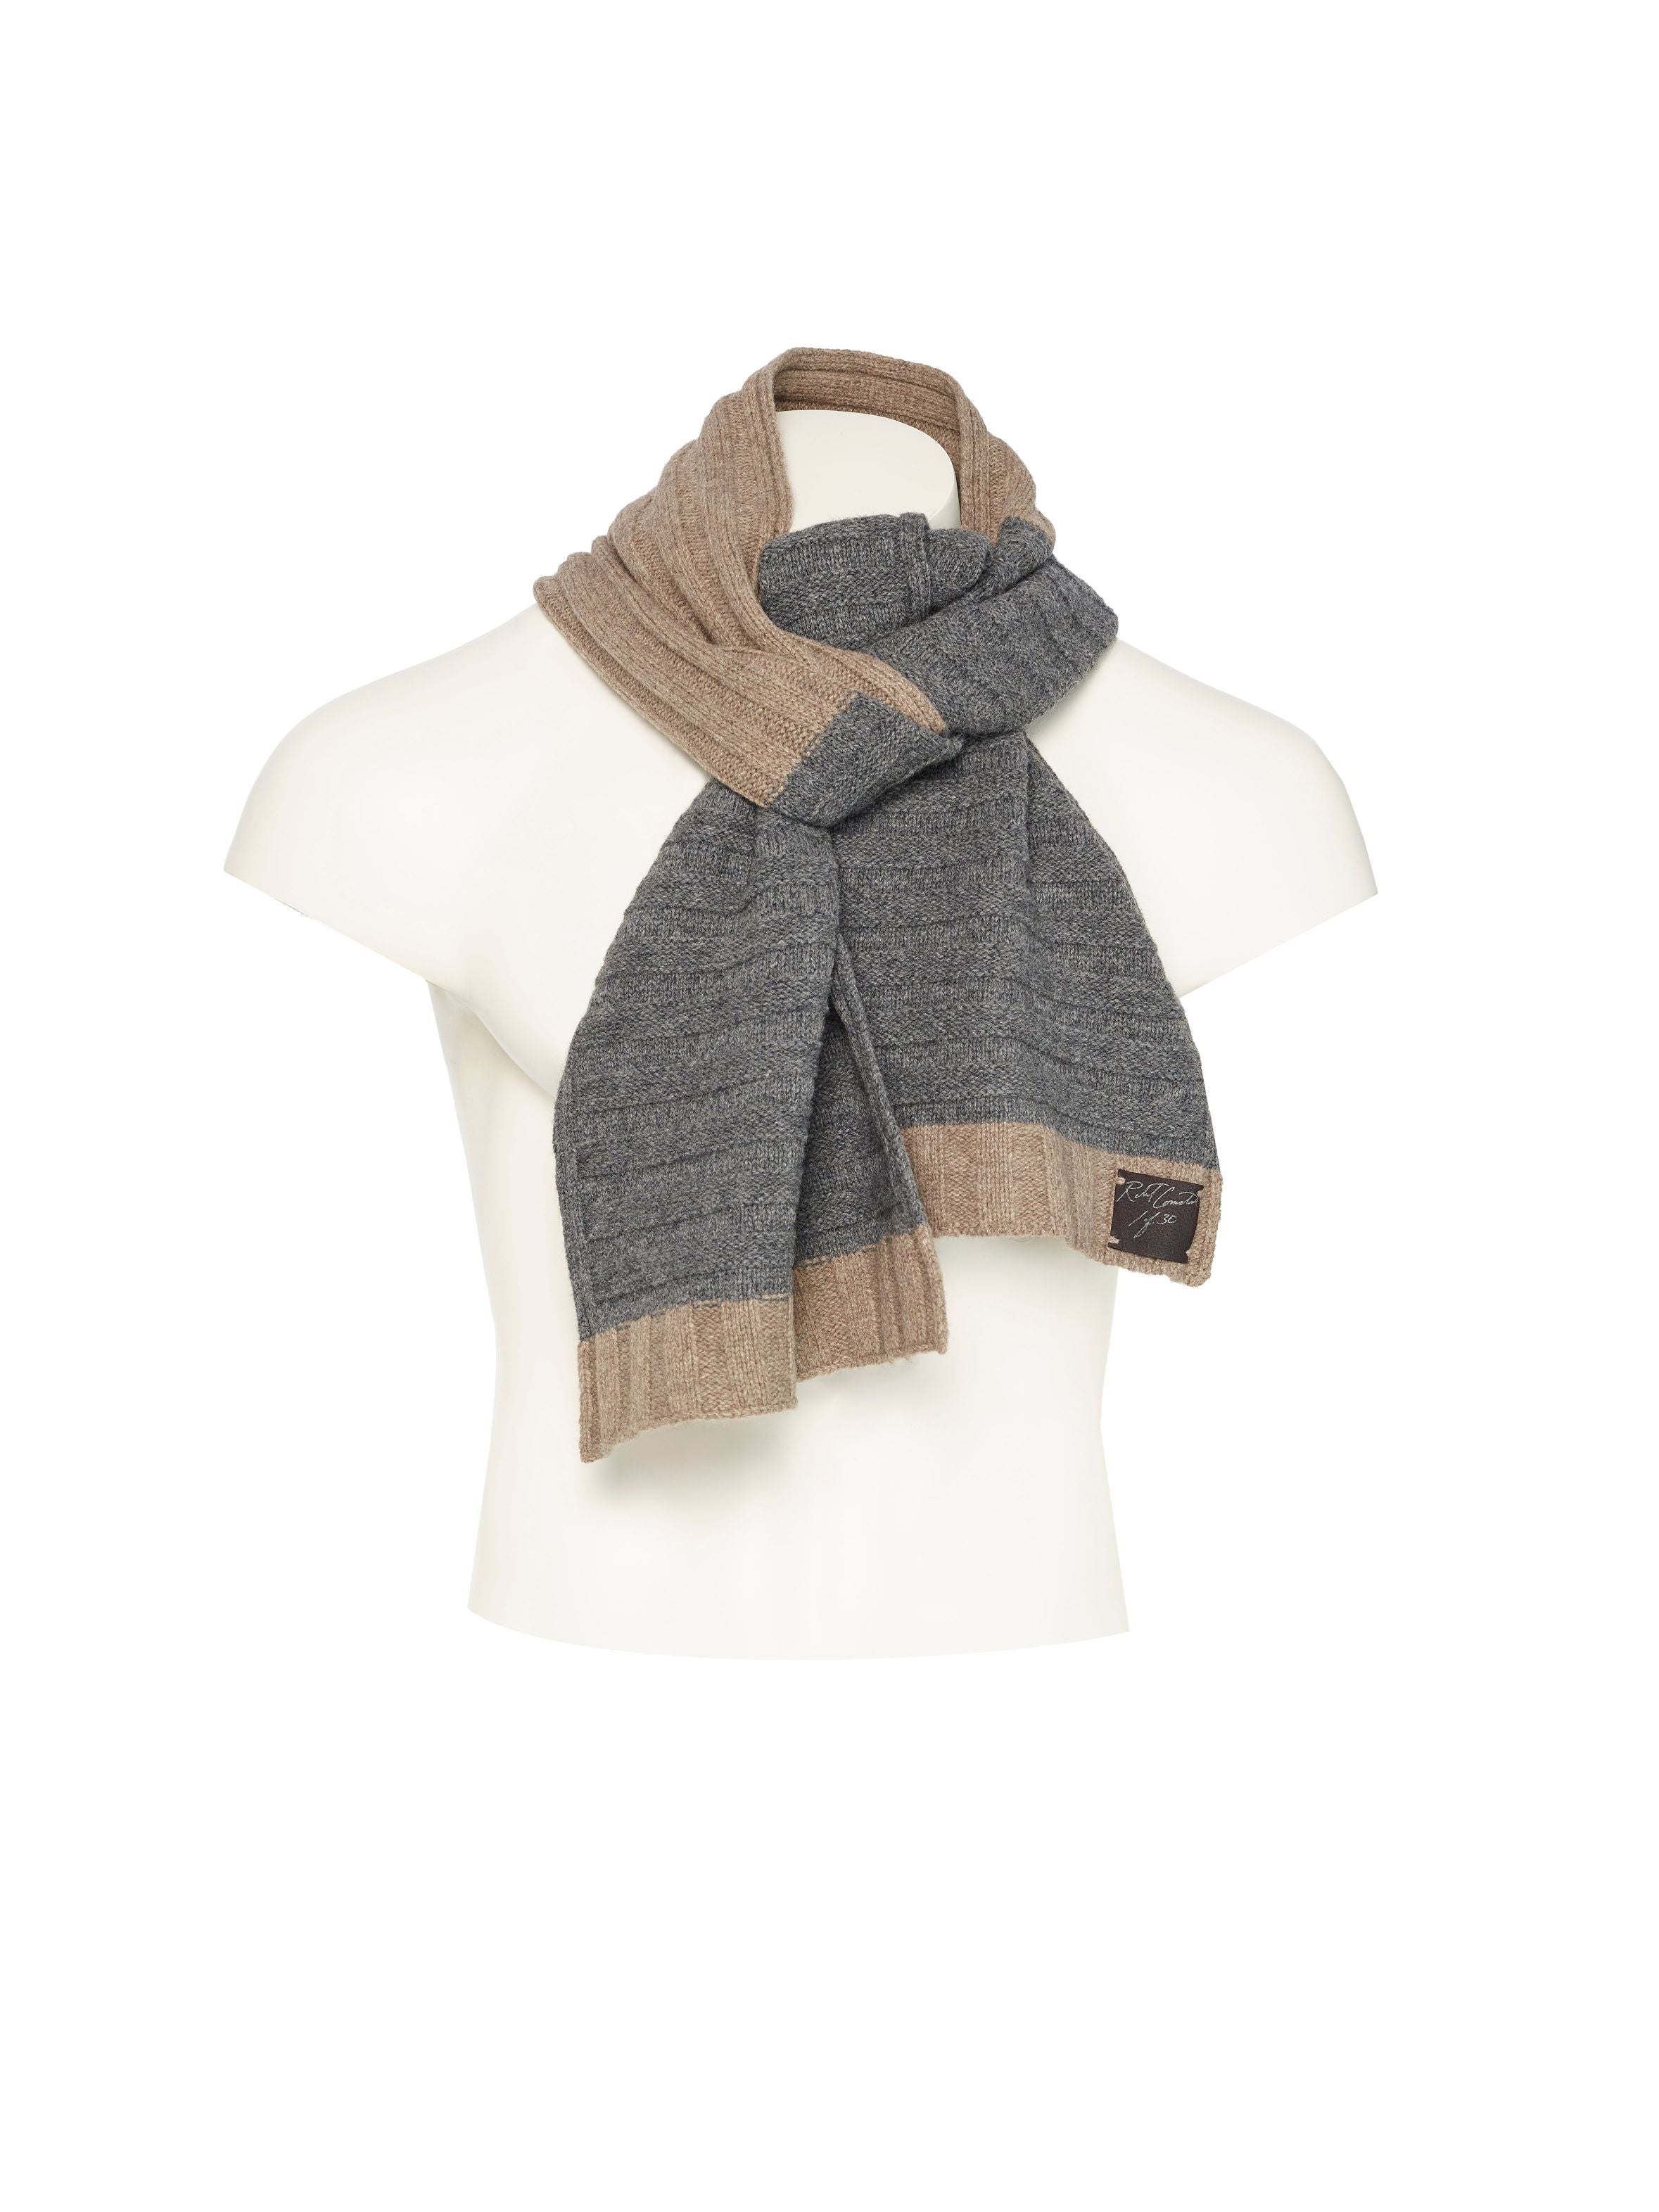 Hand signed and numbered Baby Camel scarf with alternating wheat colored horizontal flat stitch and grey slate with raised vertical stitches